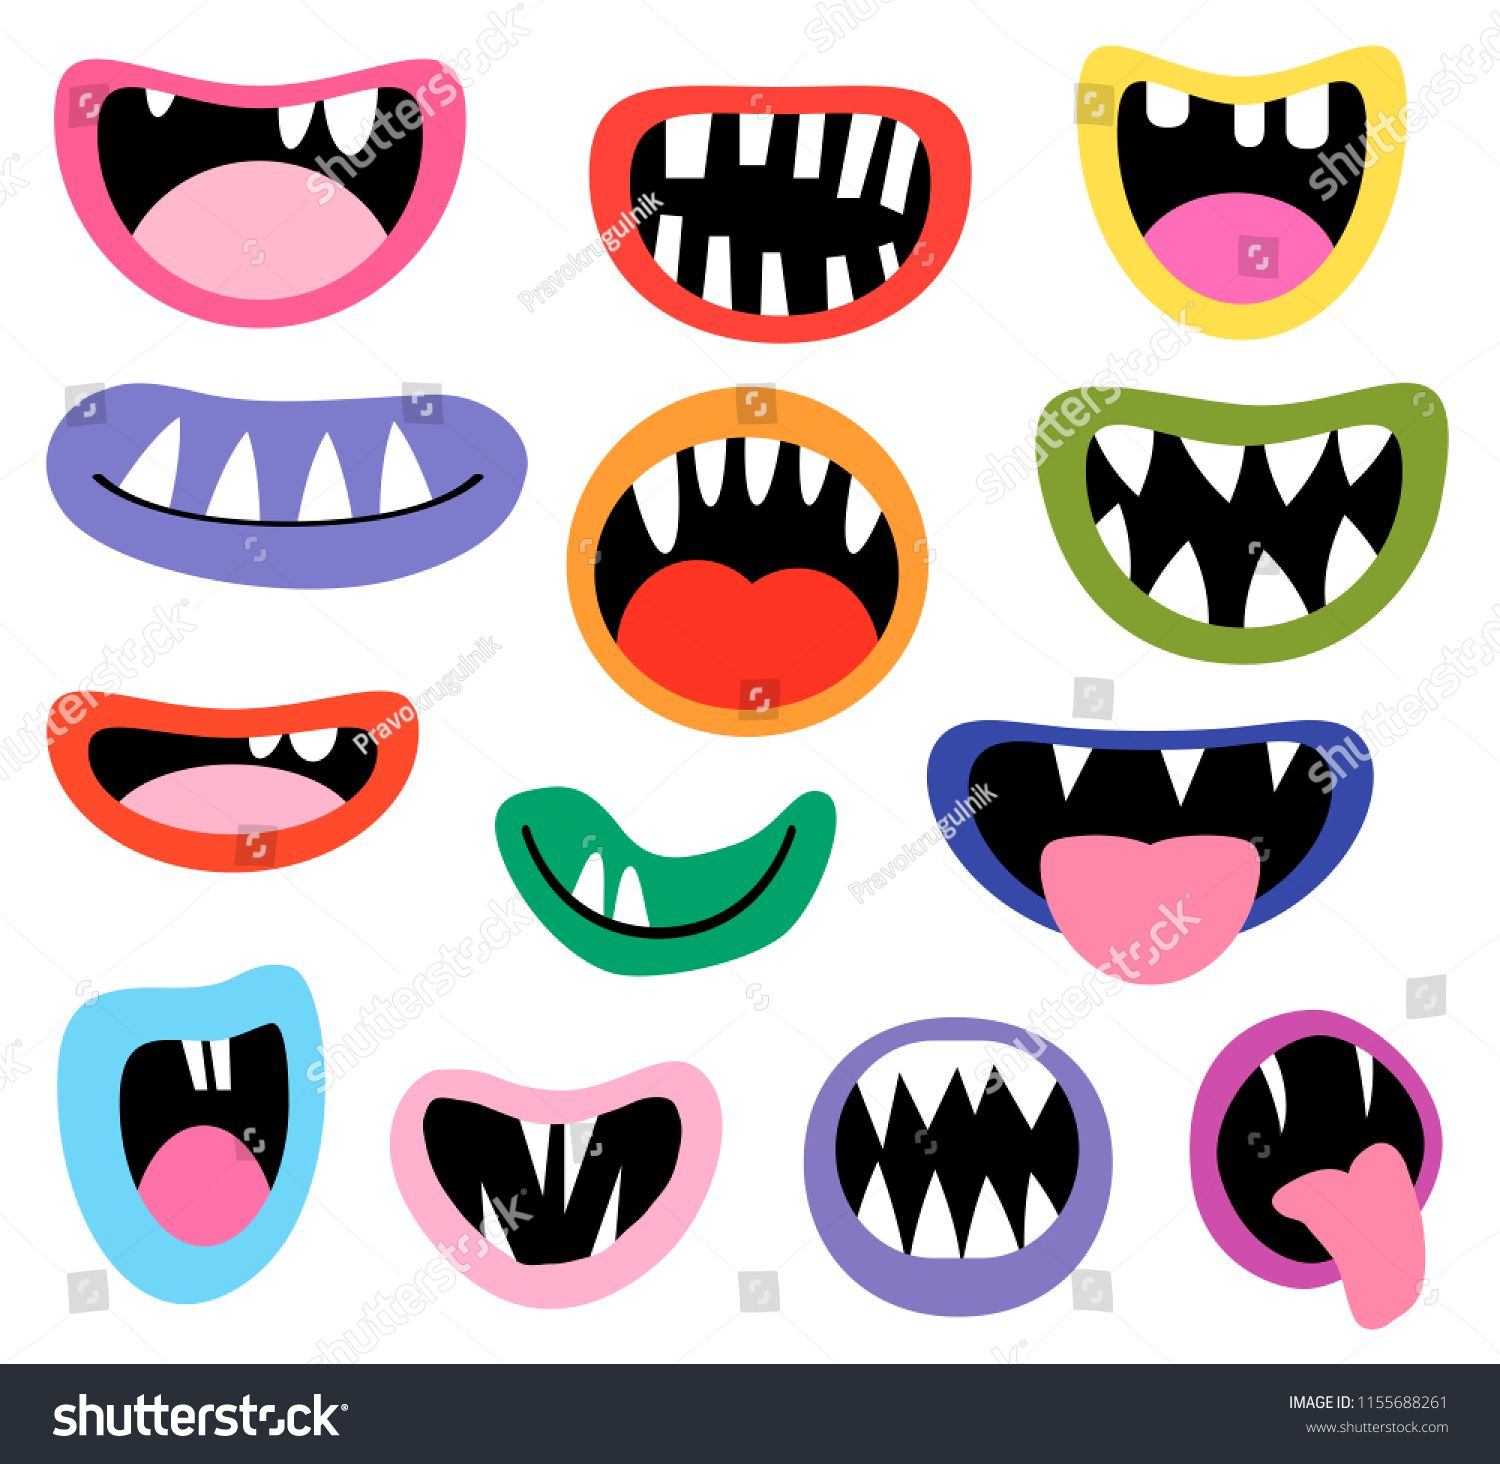 Funny Vector Monster Mouths Open And Closed With Tongues And Teeth For Birthday Party Designsmouths Open Mon Vector Monster Monster Mouth Monster Illustration